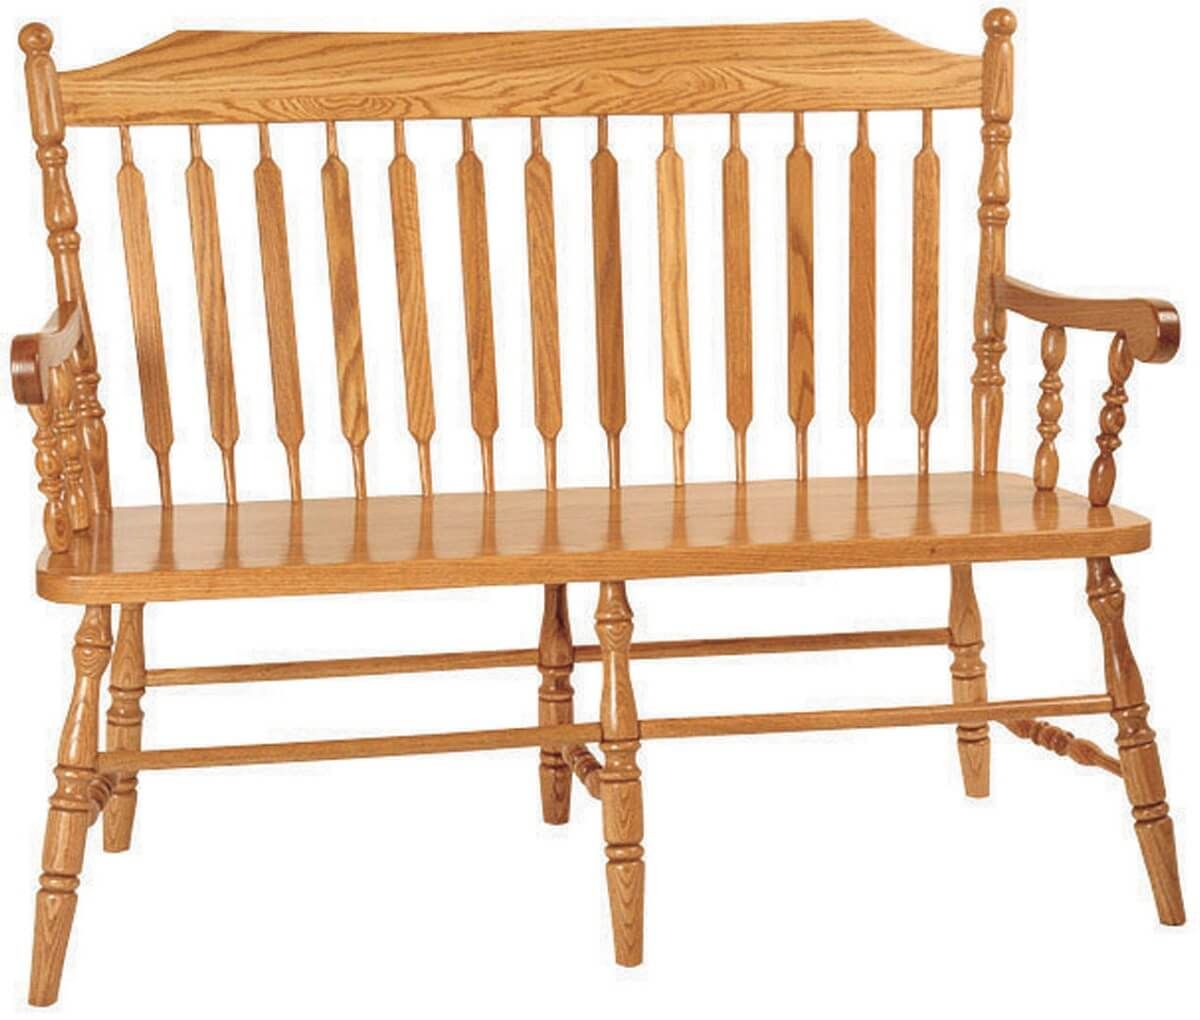 Larkin Paddle Back Bench